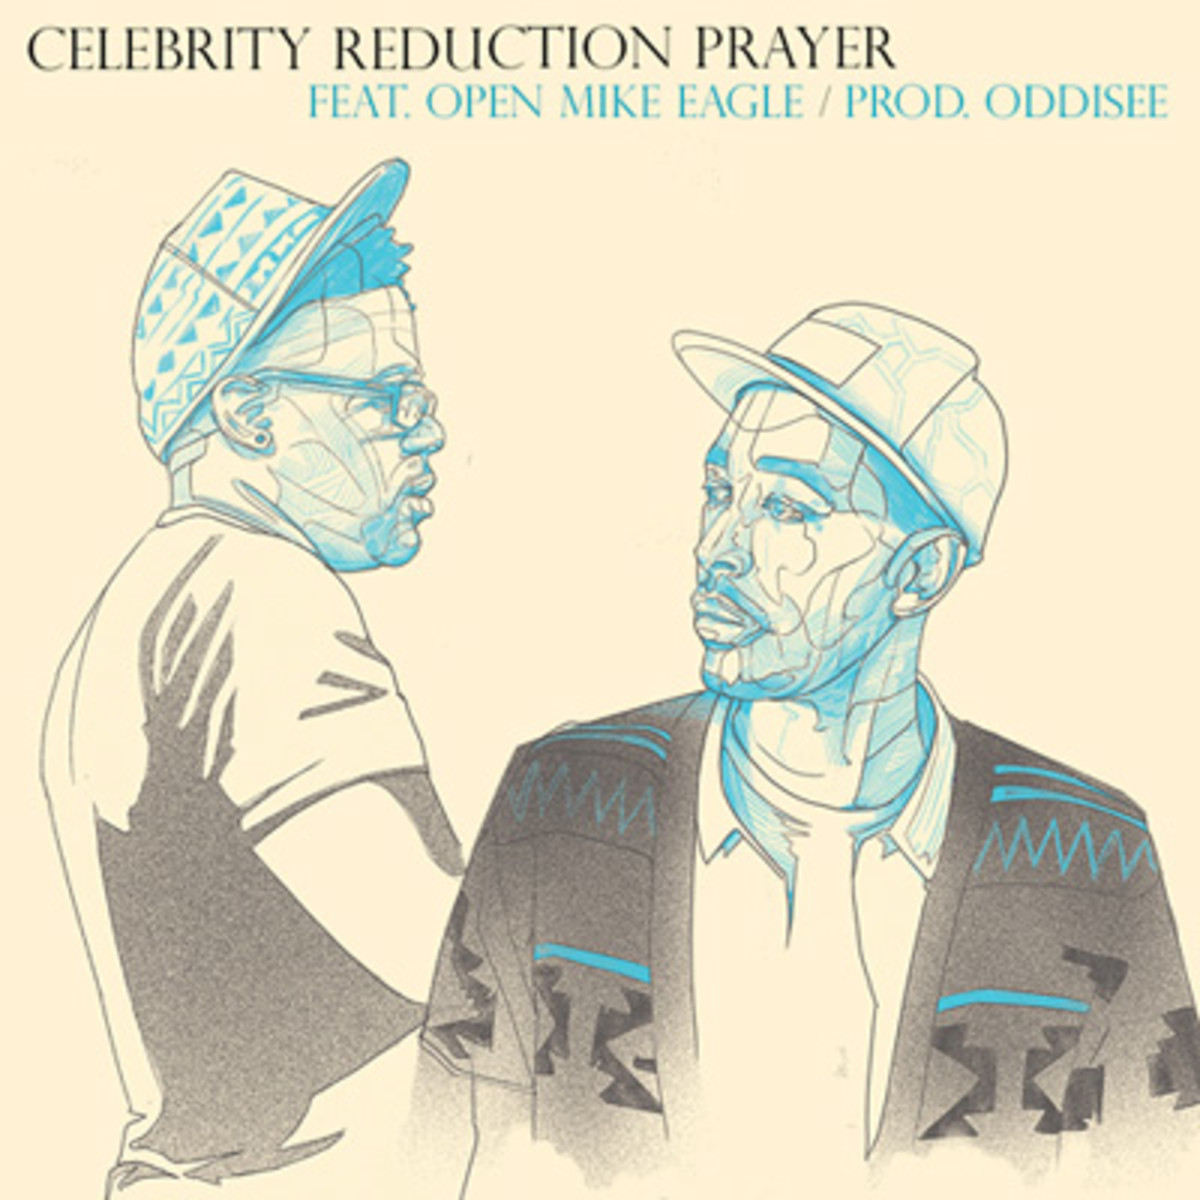 open-mike-eagle-celebrity-reduction-prayer.jpg